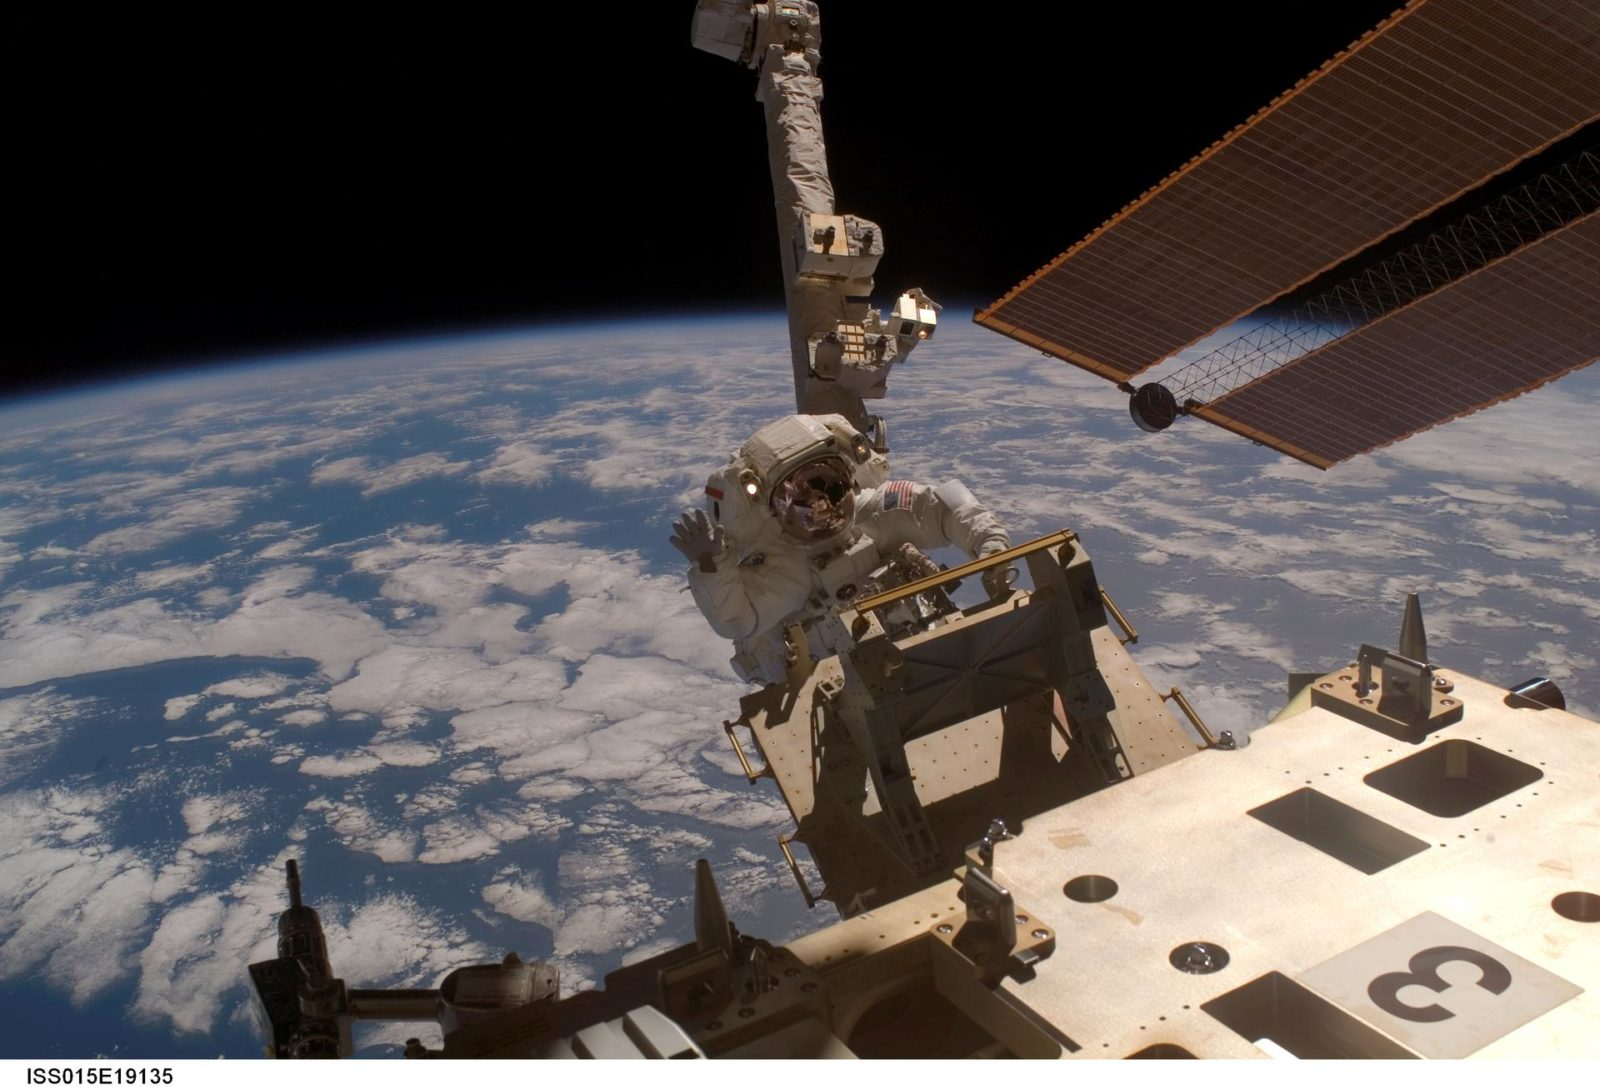 View of Anderson removing the EAS during a session of EVA on Expedition 15